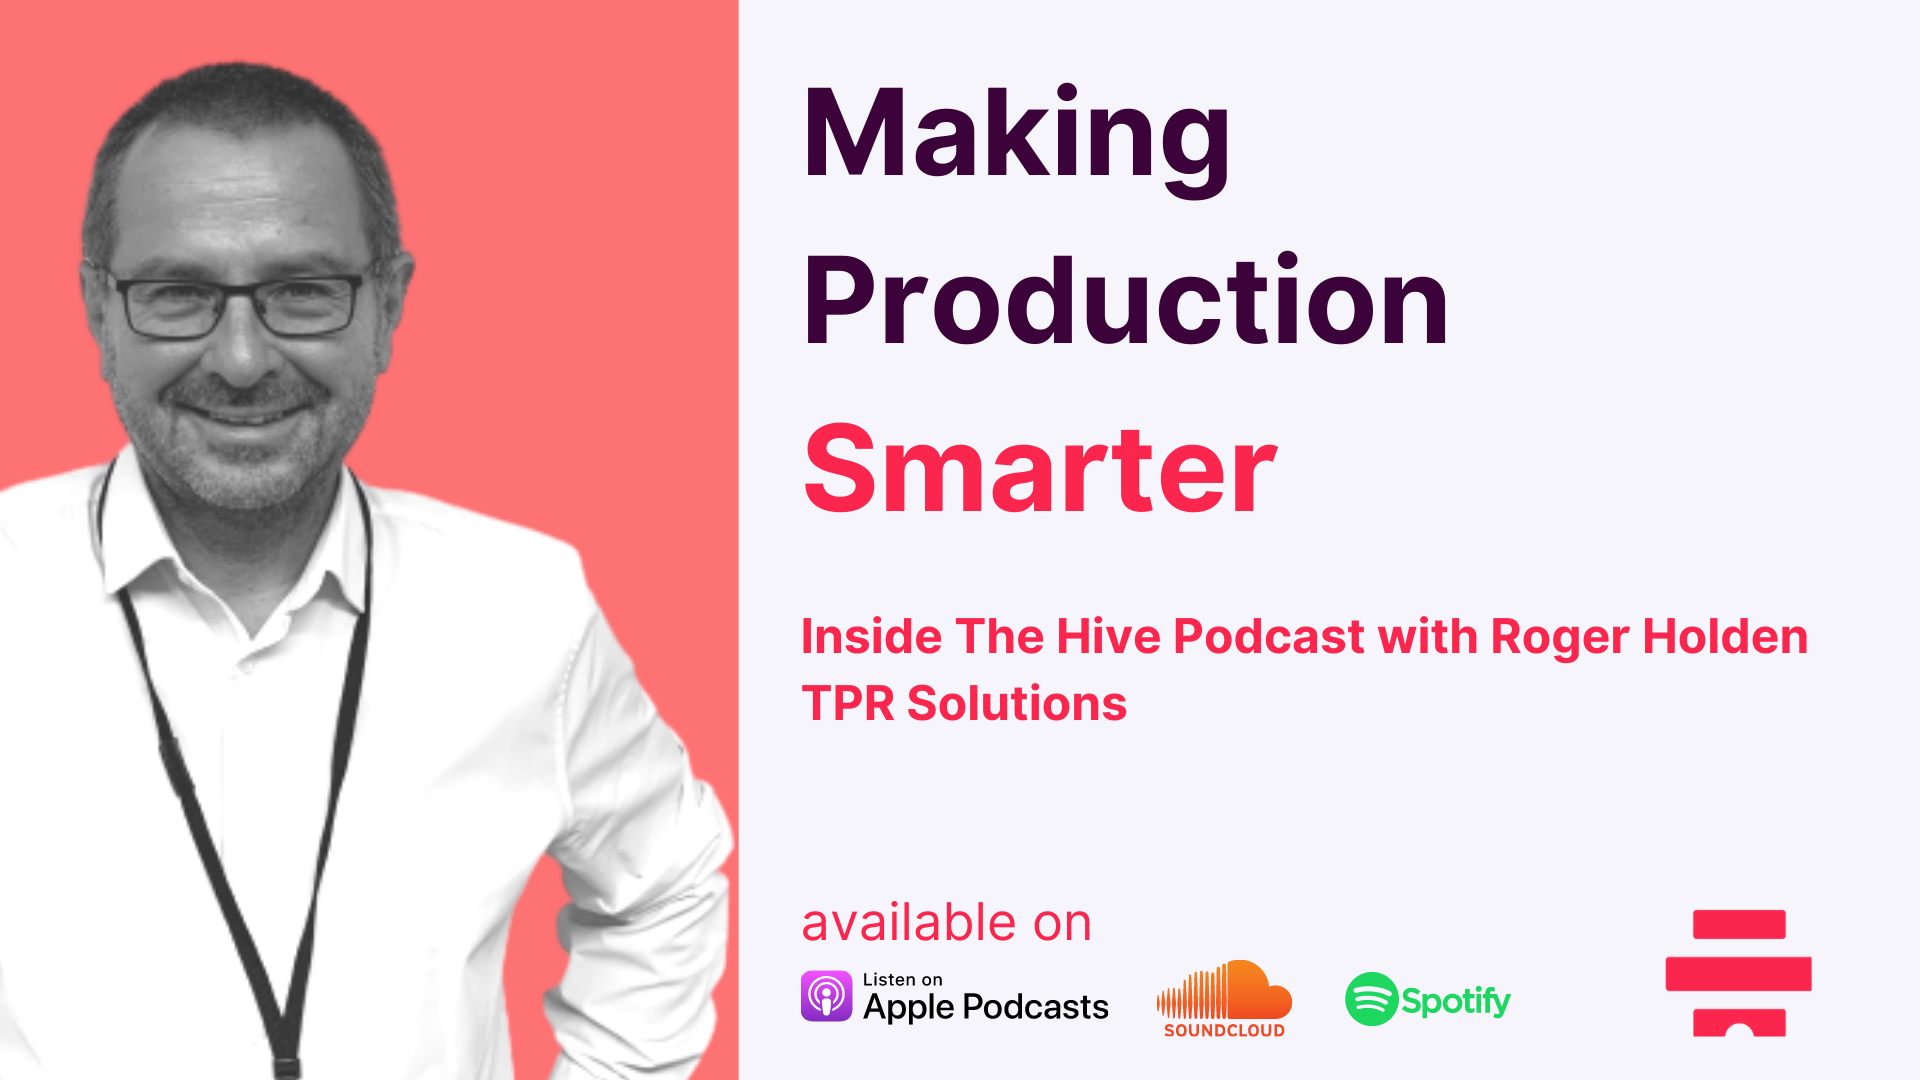 Making Production Smarter Podcast